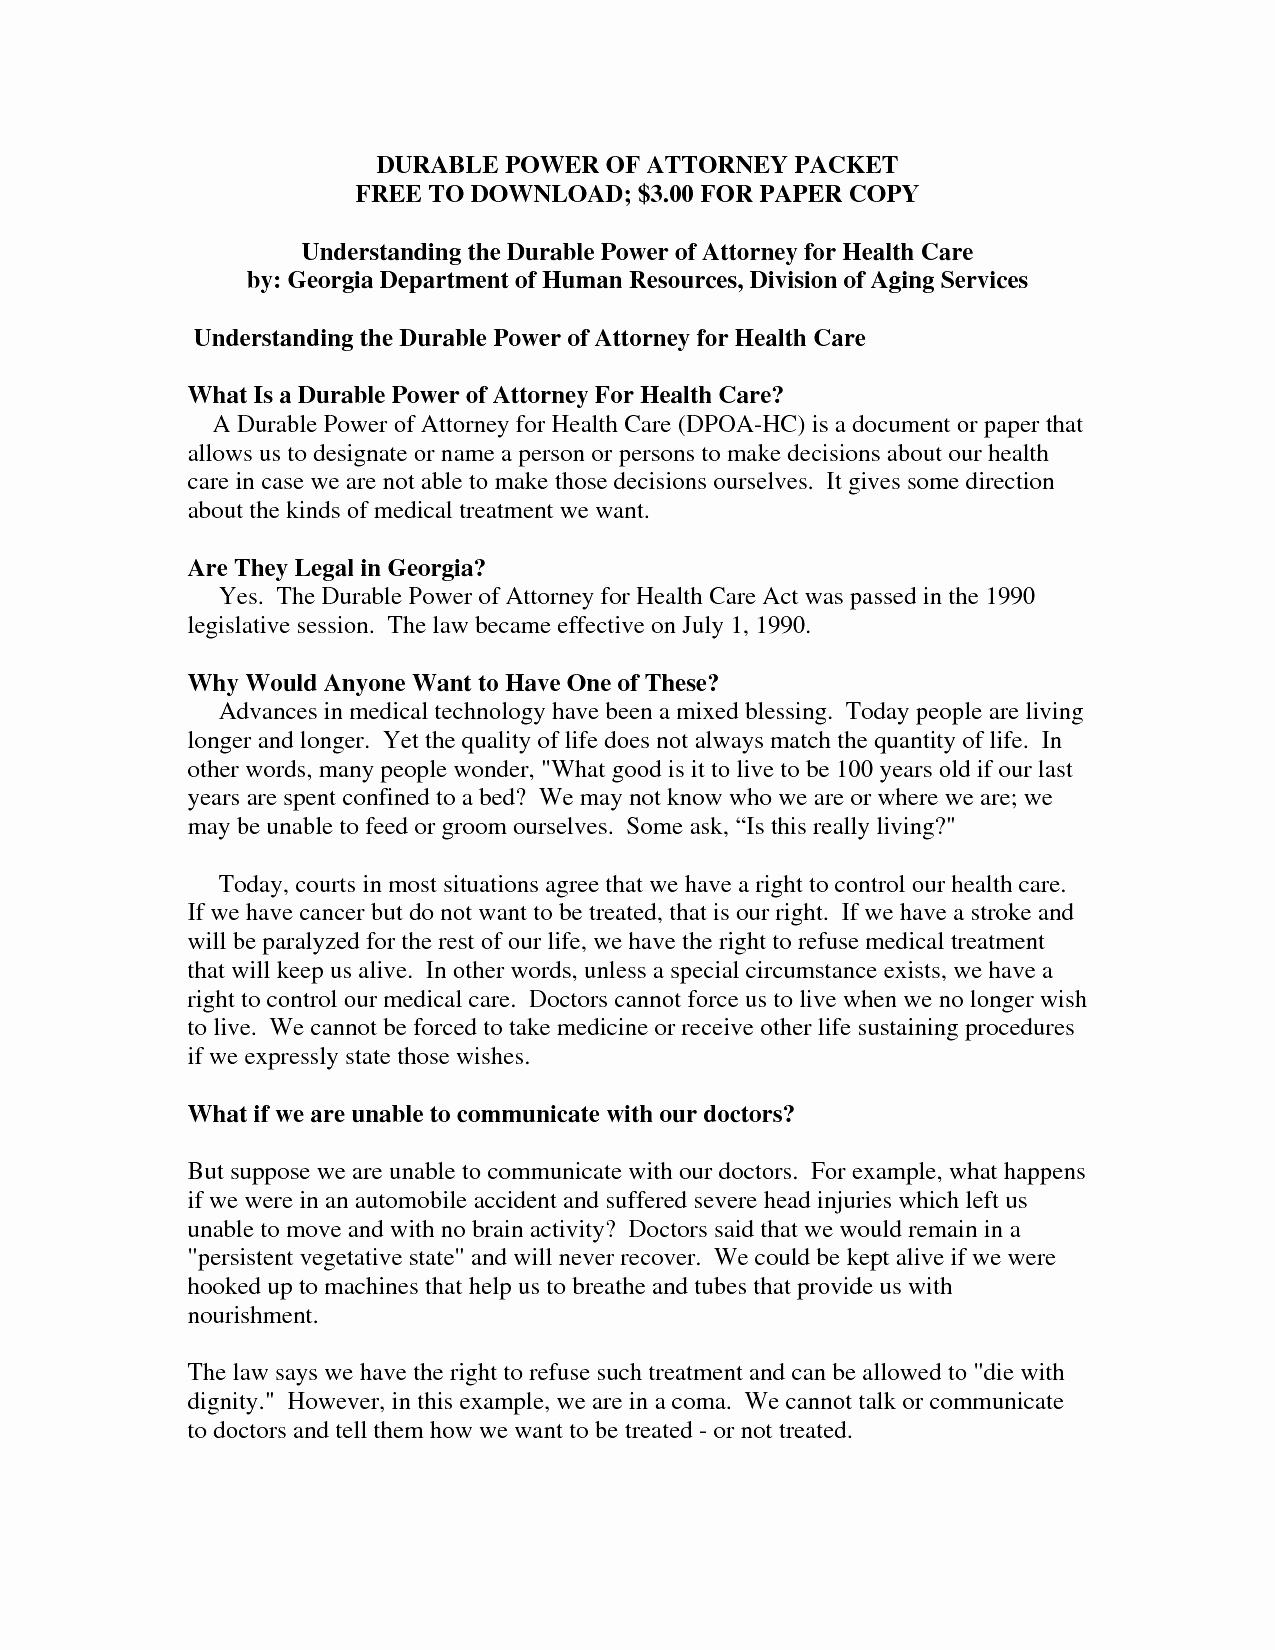 New Jersey Durable Power Of Attorney Awesome Georgia Power Attorney Form Pdf Best General Power Attorney